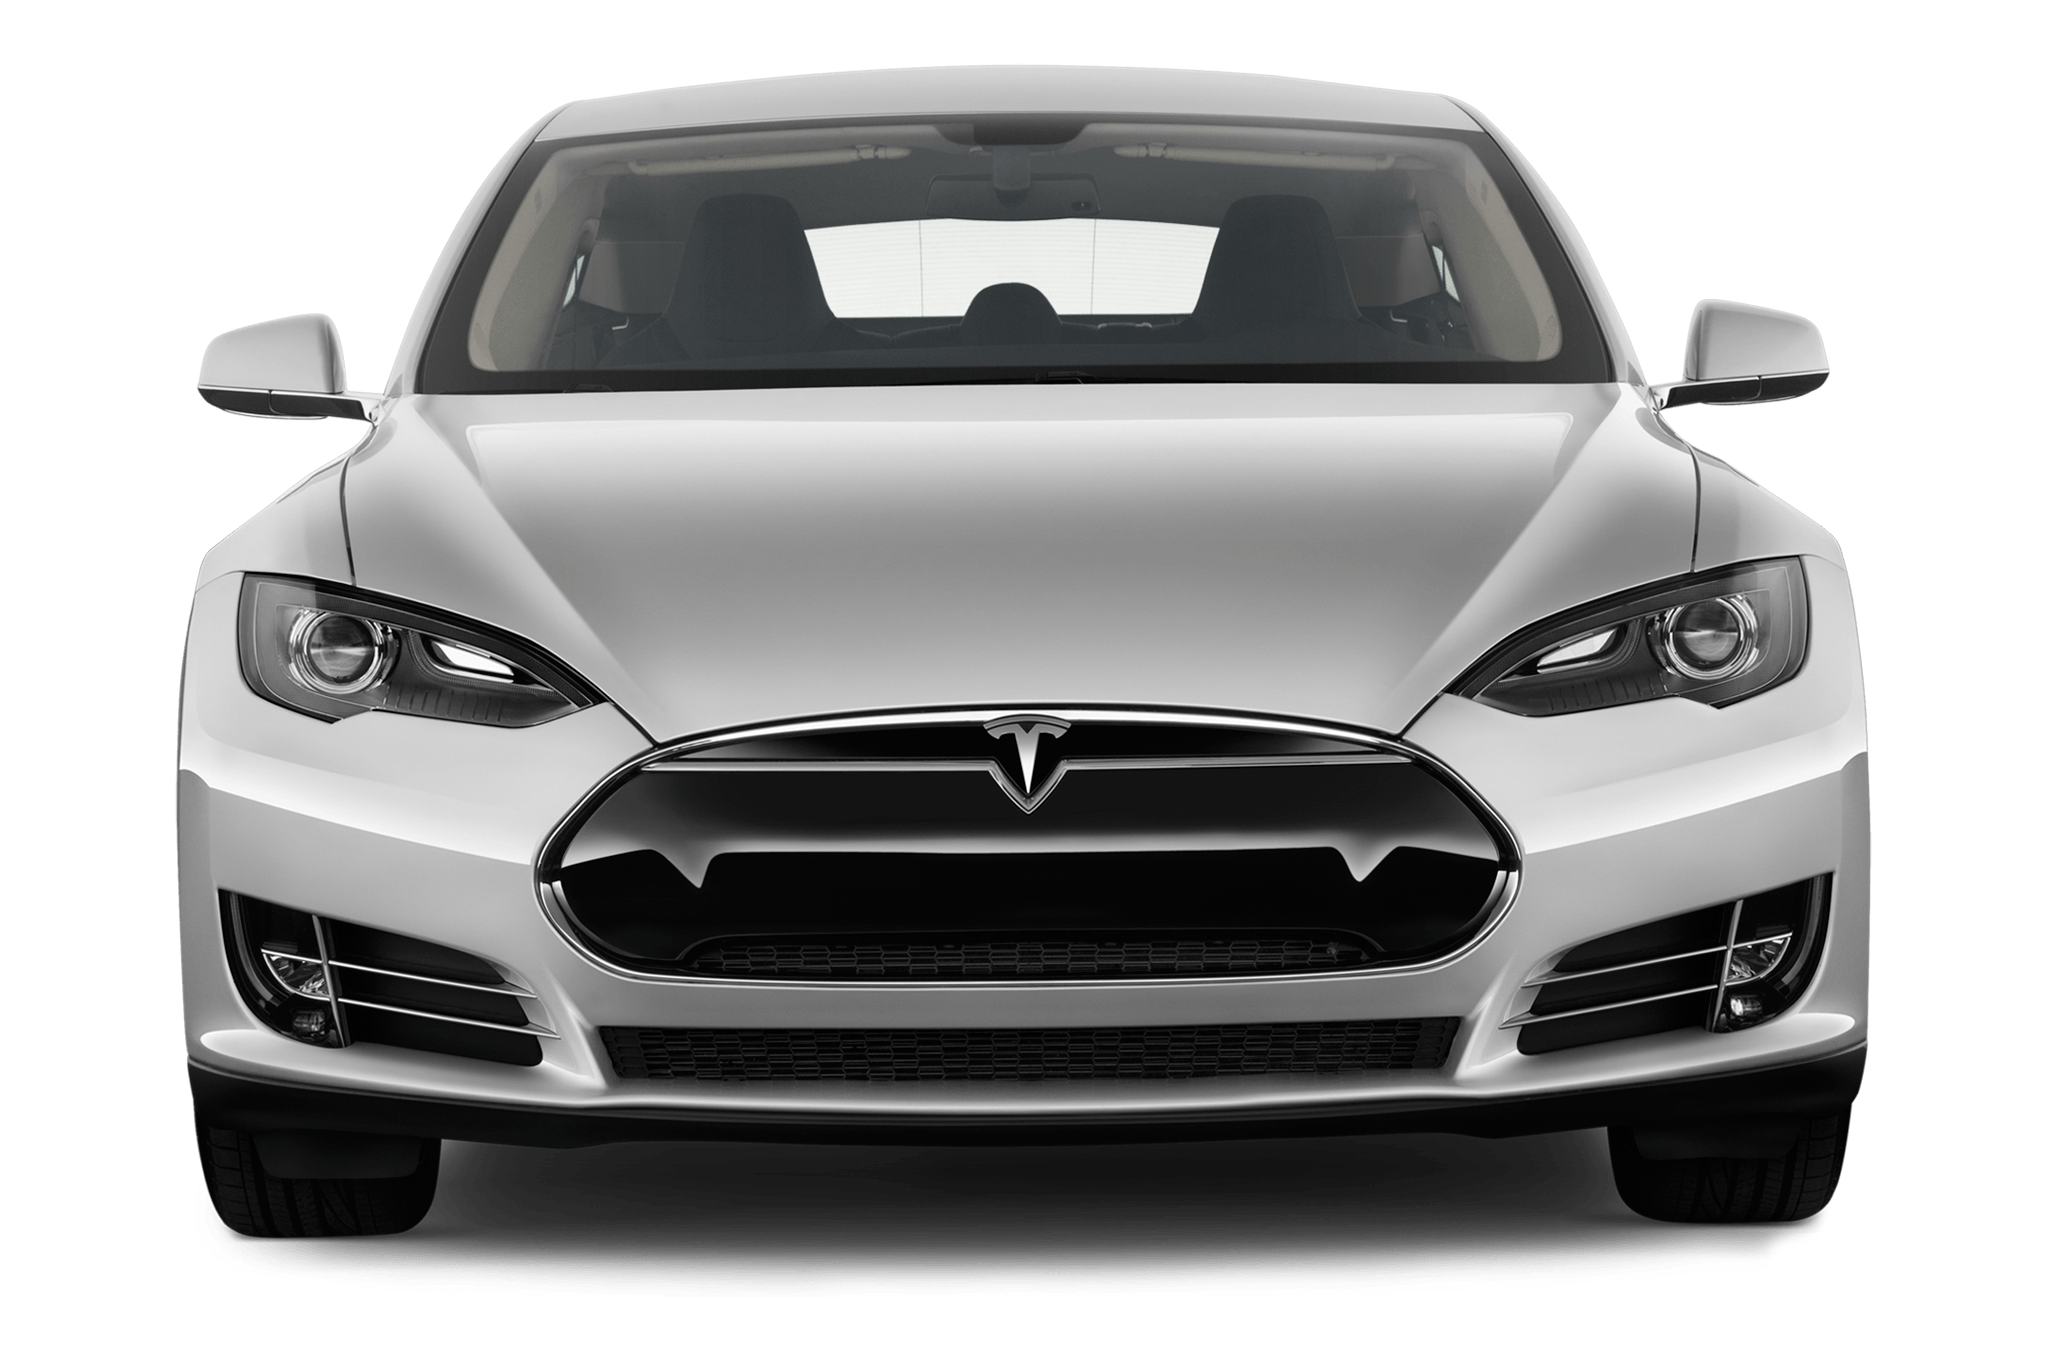 Tesla model s transparent